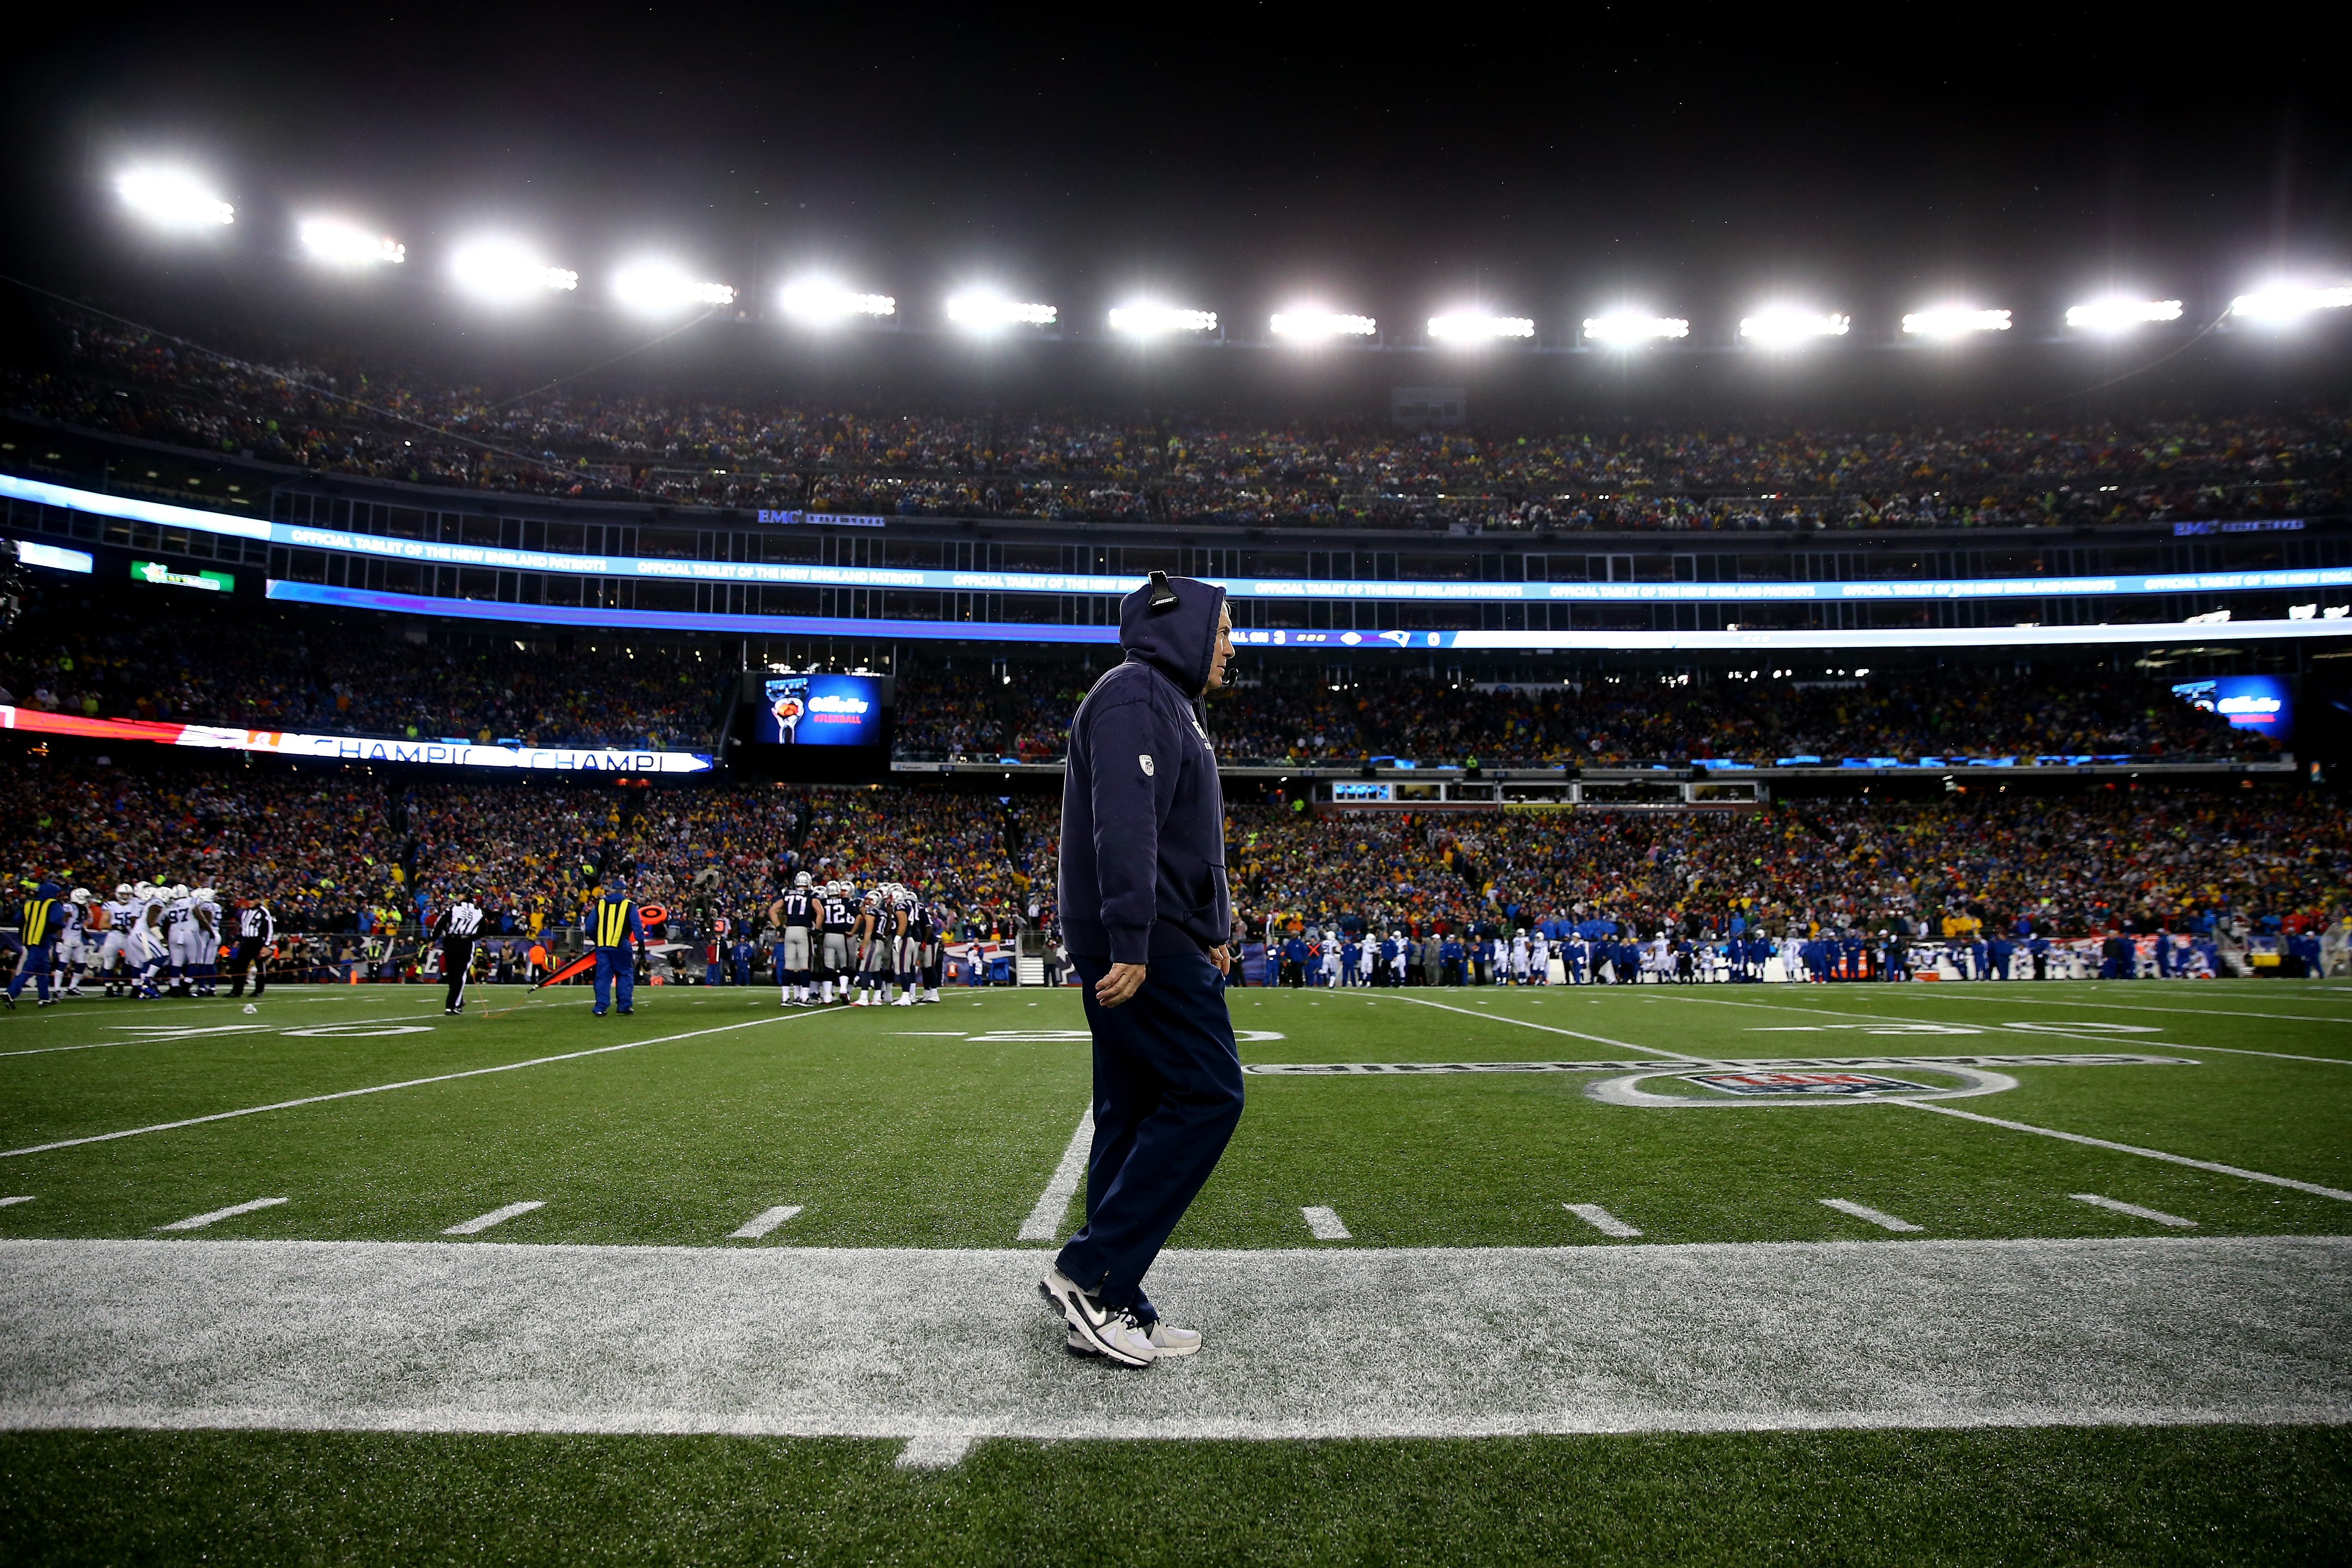 Head coach Bill Belichick of the New England Patriots looks on from the sideline in the first half against the Indianapolis Colts during the 2015 AFC Championship Game at Gillette Stadium on Jna. 18, 2015 in Foxboro, Mass.